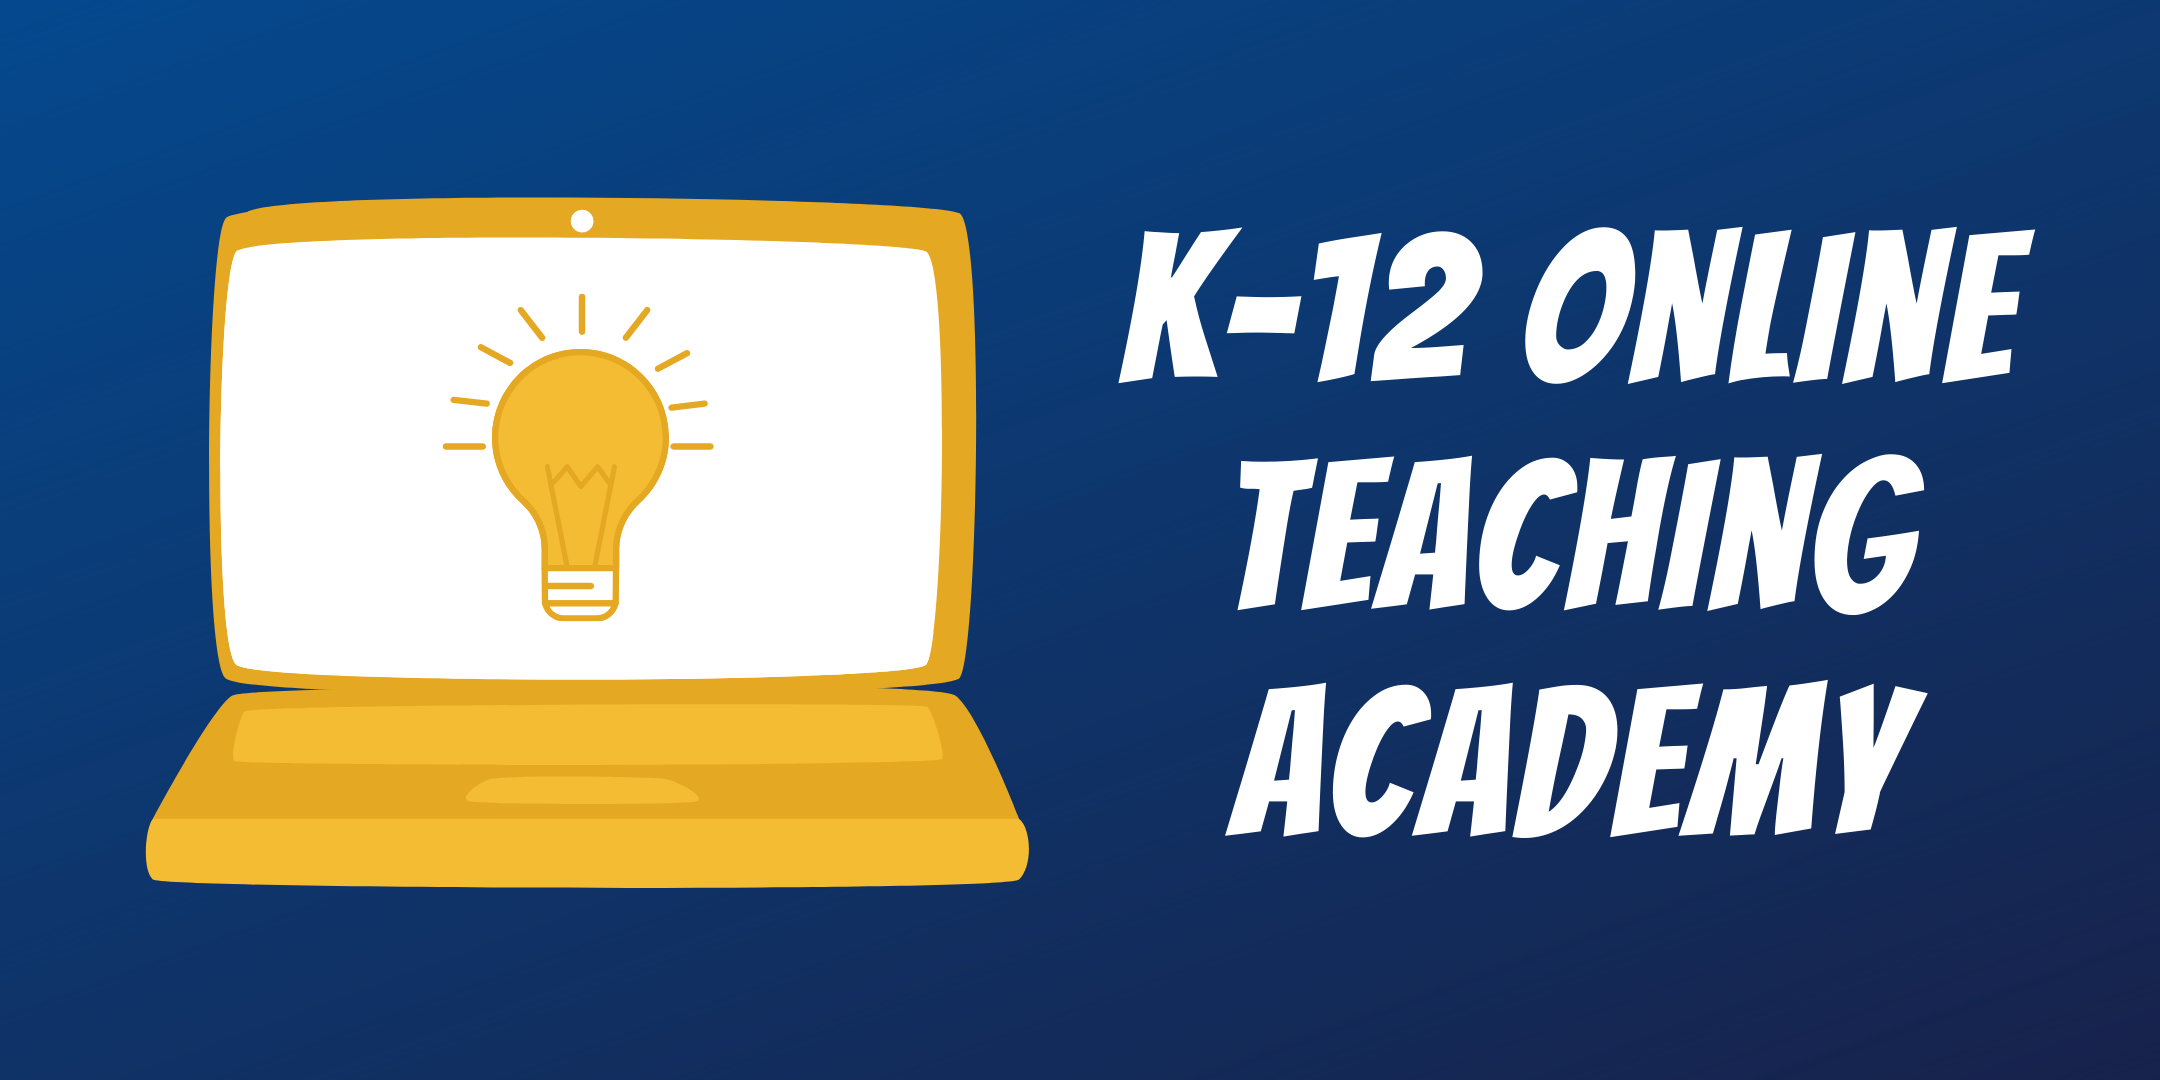 K-12 Online Teaching Academy